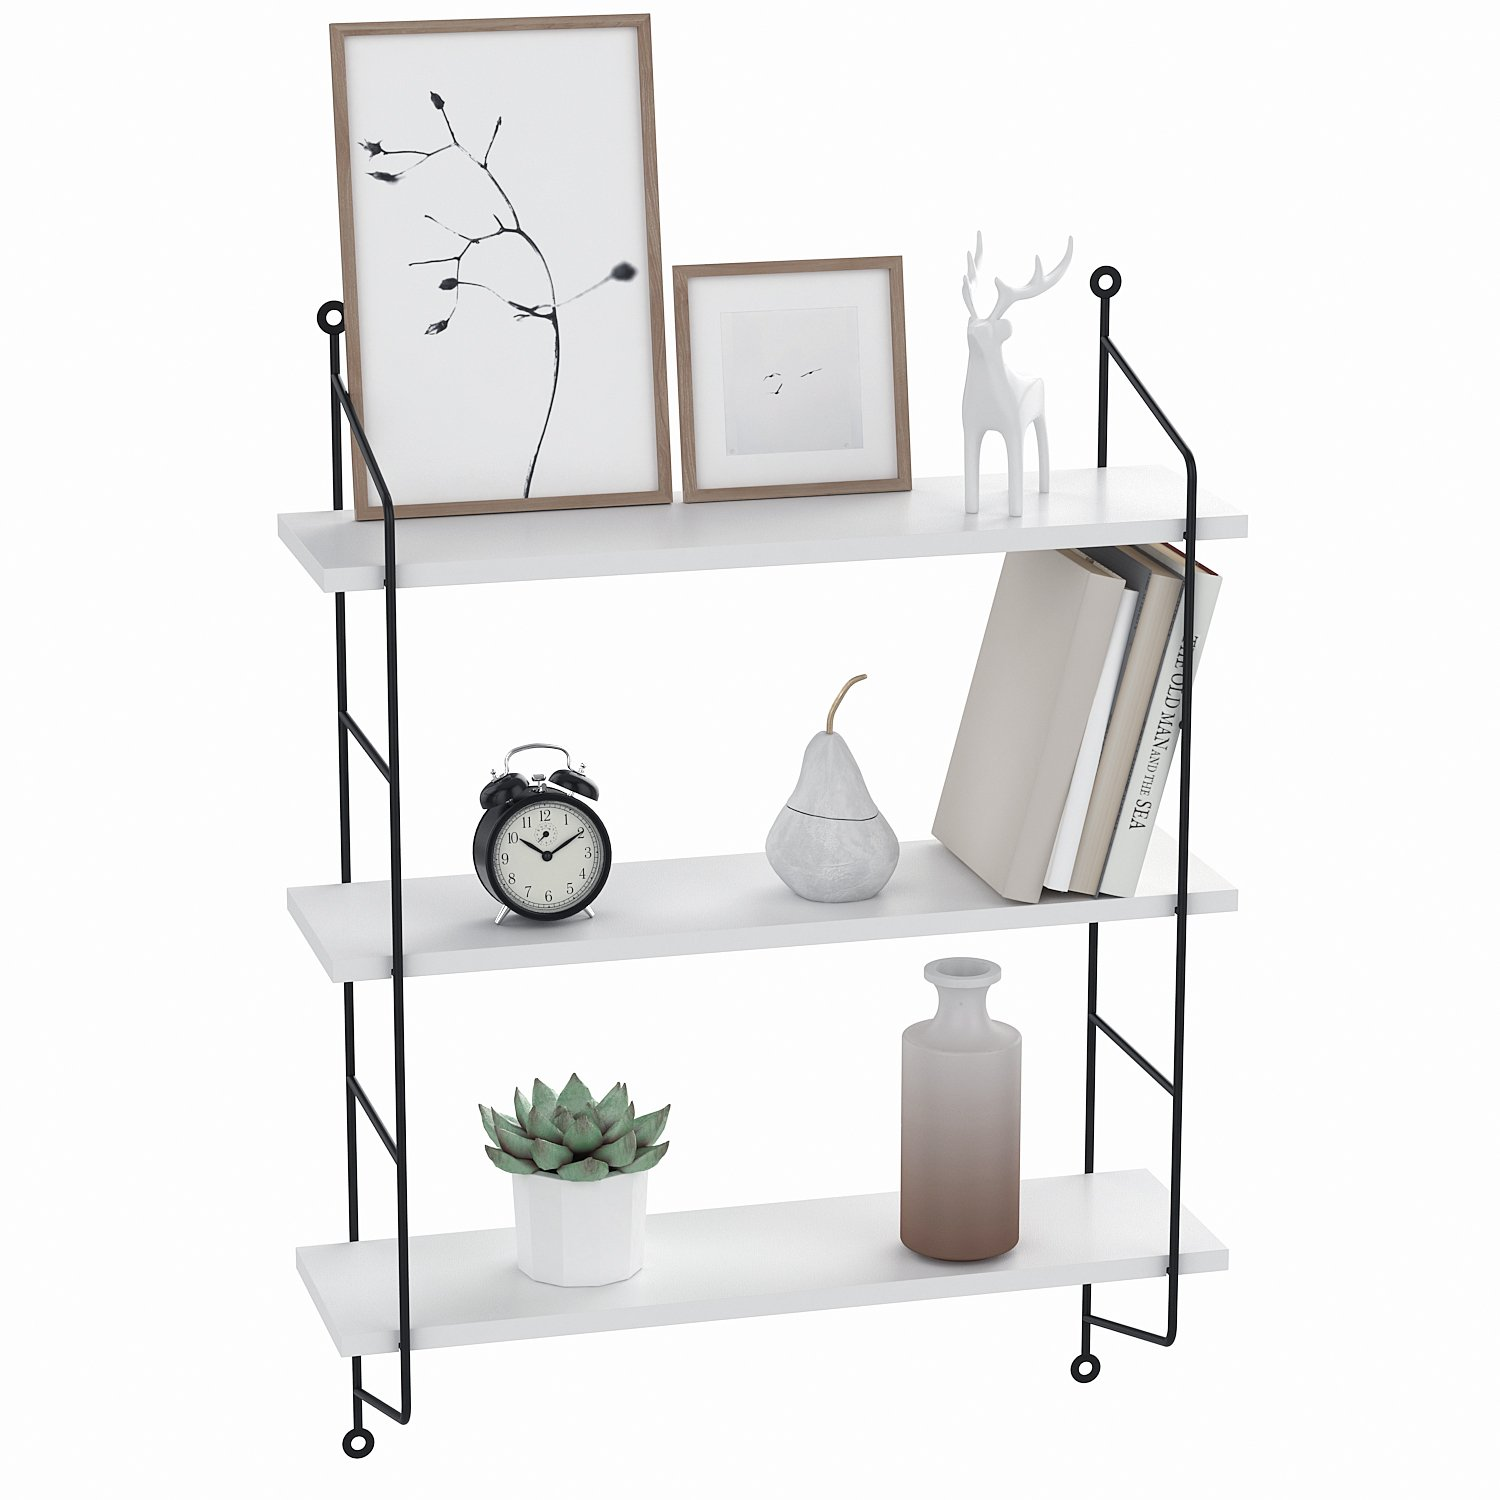 homdox industrial floating shelves wall mounted metal white shelf frame urban chic display tier home kitchen ikea sizes hooks for hanging heavy items shower matt thin computer